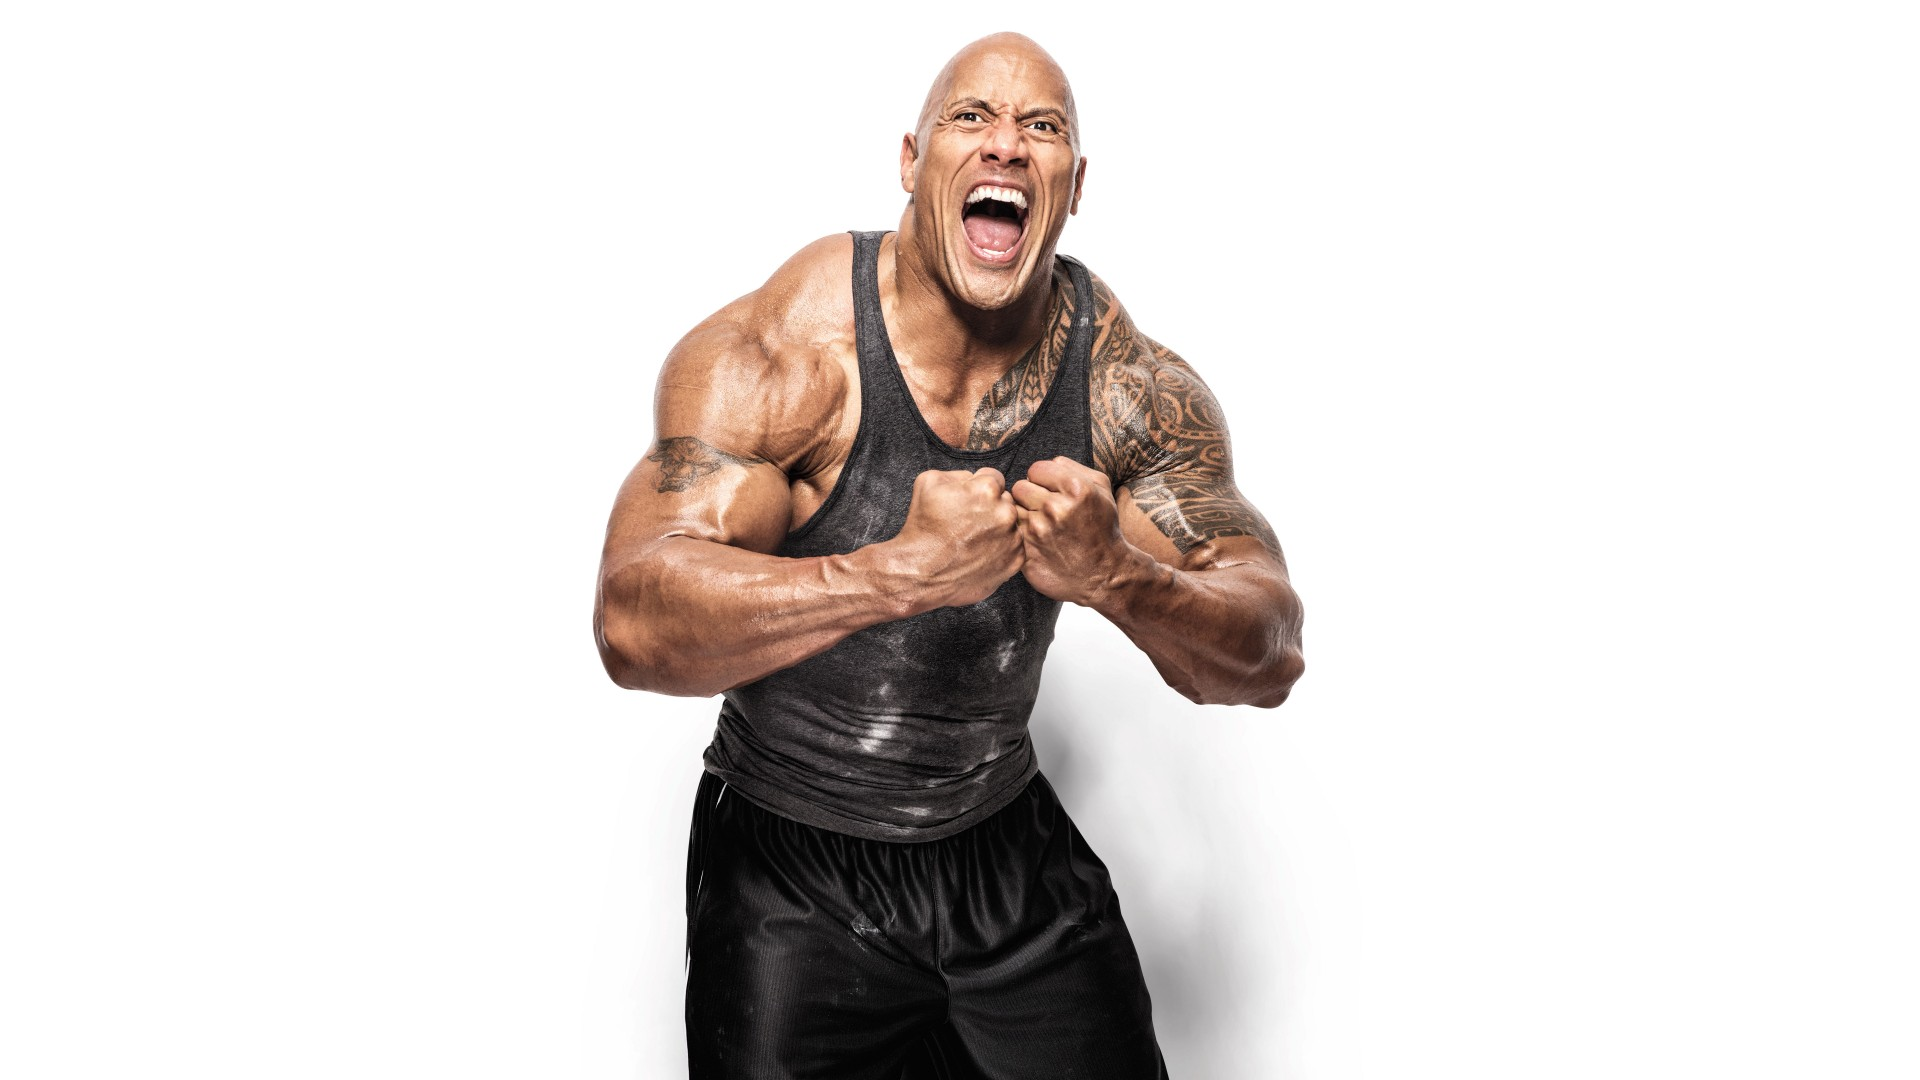 Cute Wallpapers For Iphone 6s Plus Dwayne Johnson 4k 8k Wallpapers Hd Wallpapers Id 19971